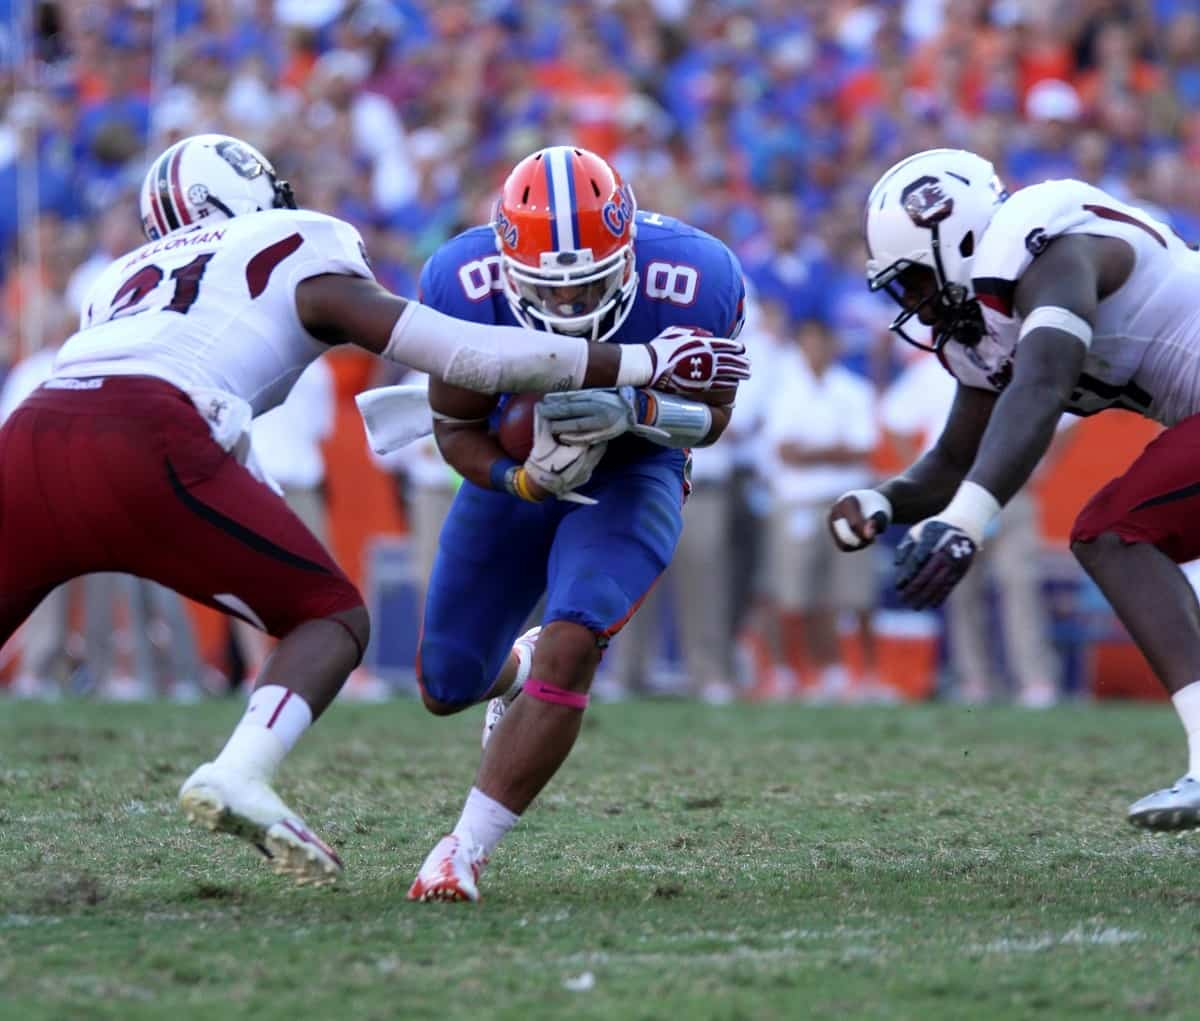 Trey Burton might see more action than usual as an option quarterback against South Carolina.